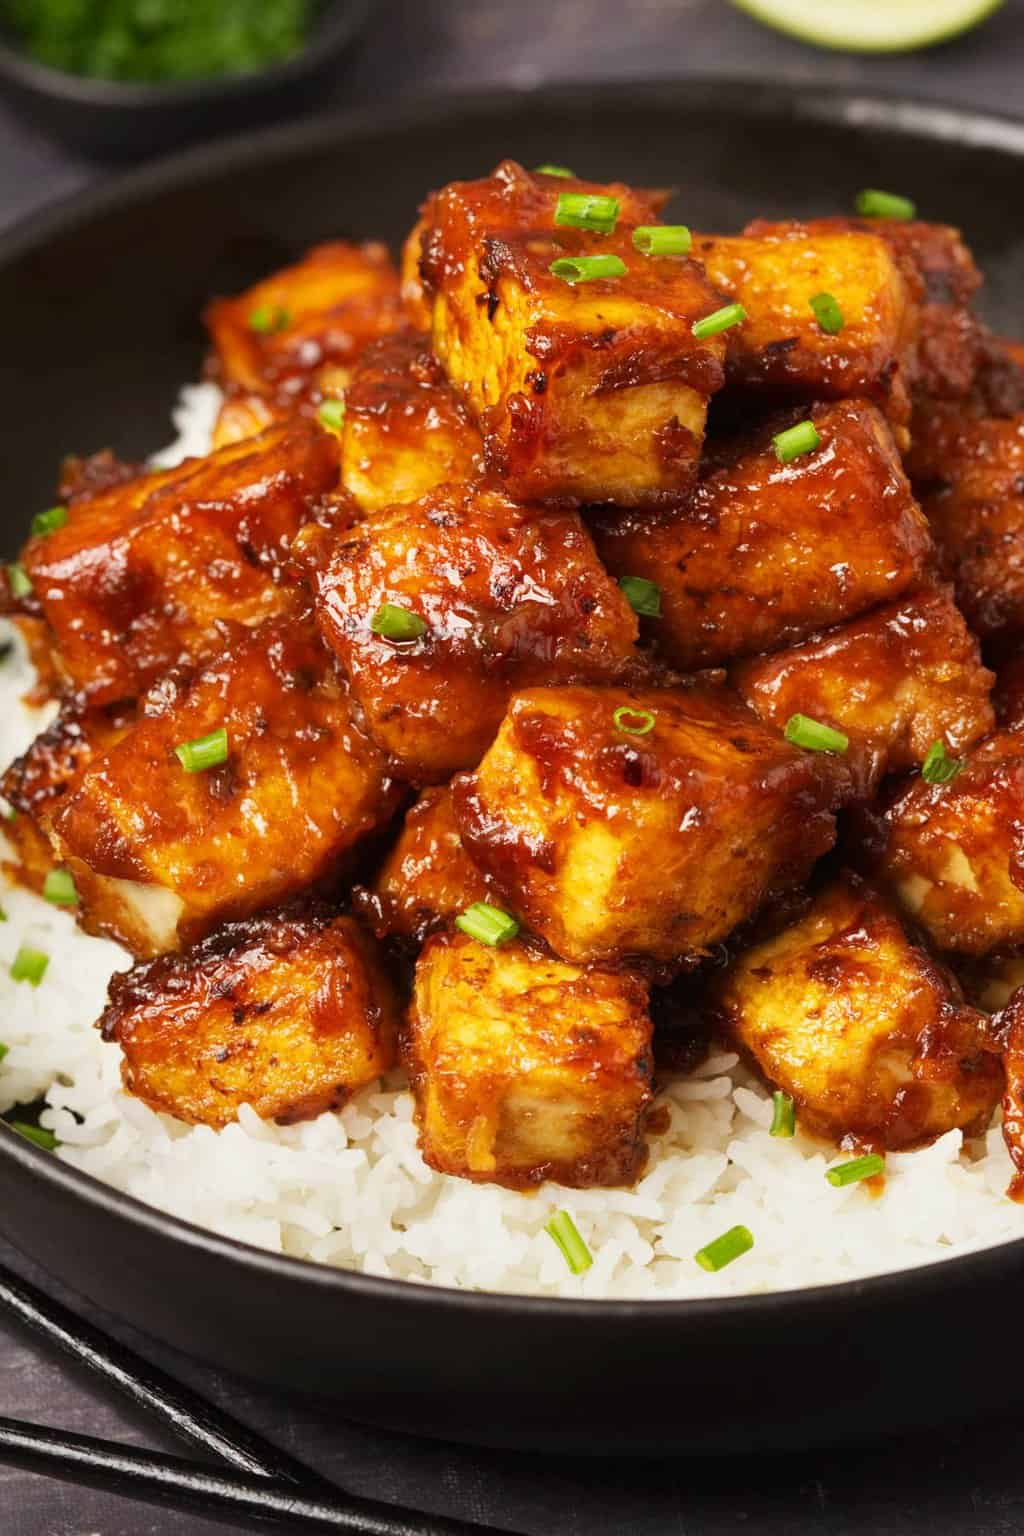 General Tso's tofu served over basmati rice with chopped chives.